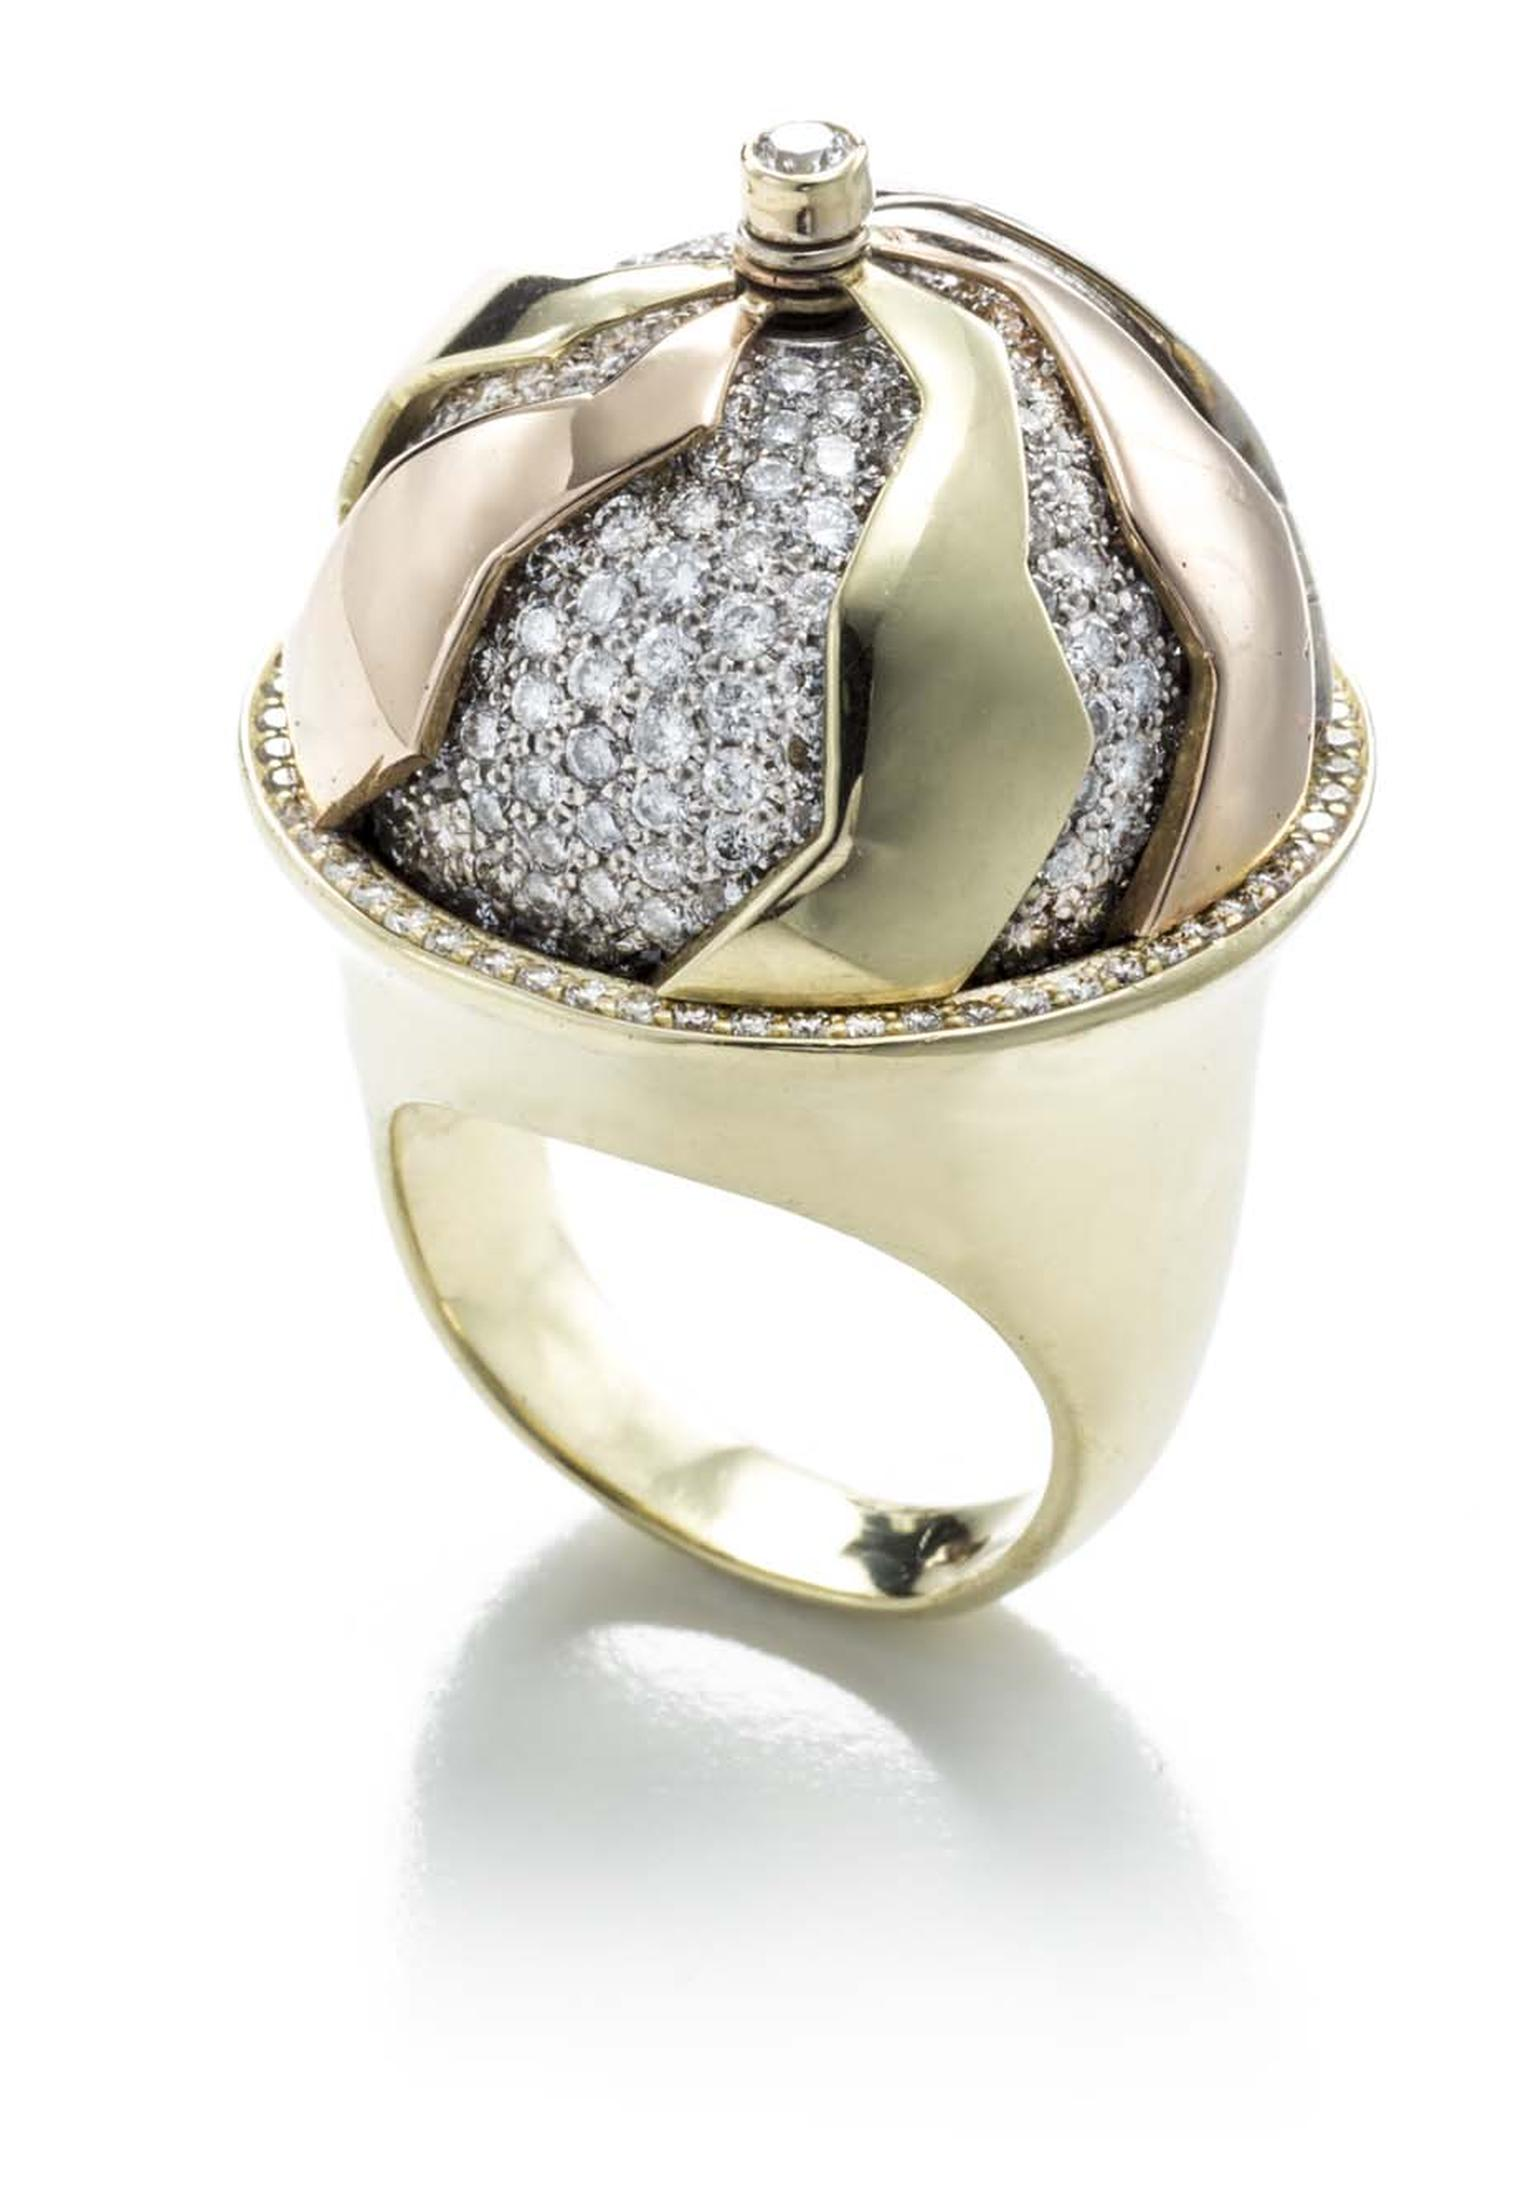 Kara Ross Pangea ring in yellow gold and rose gold with diamonds